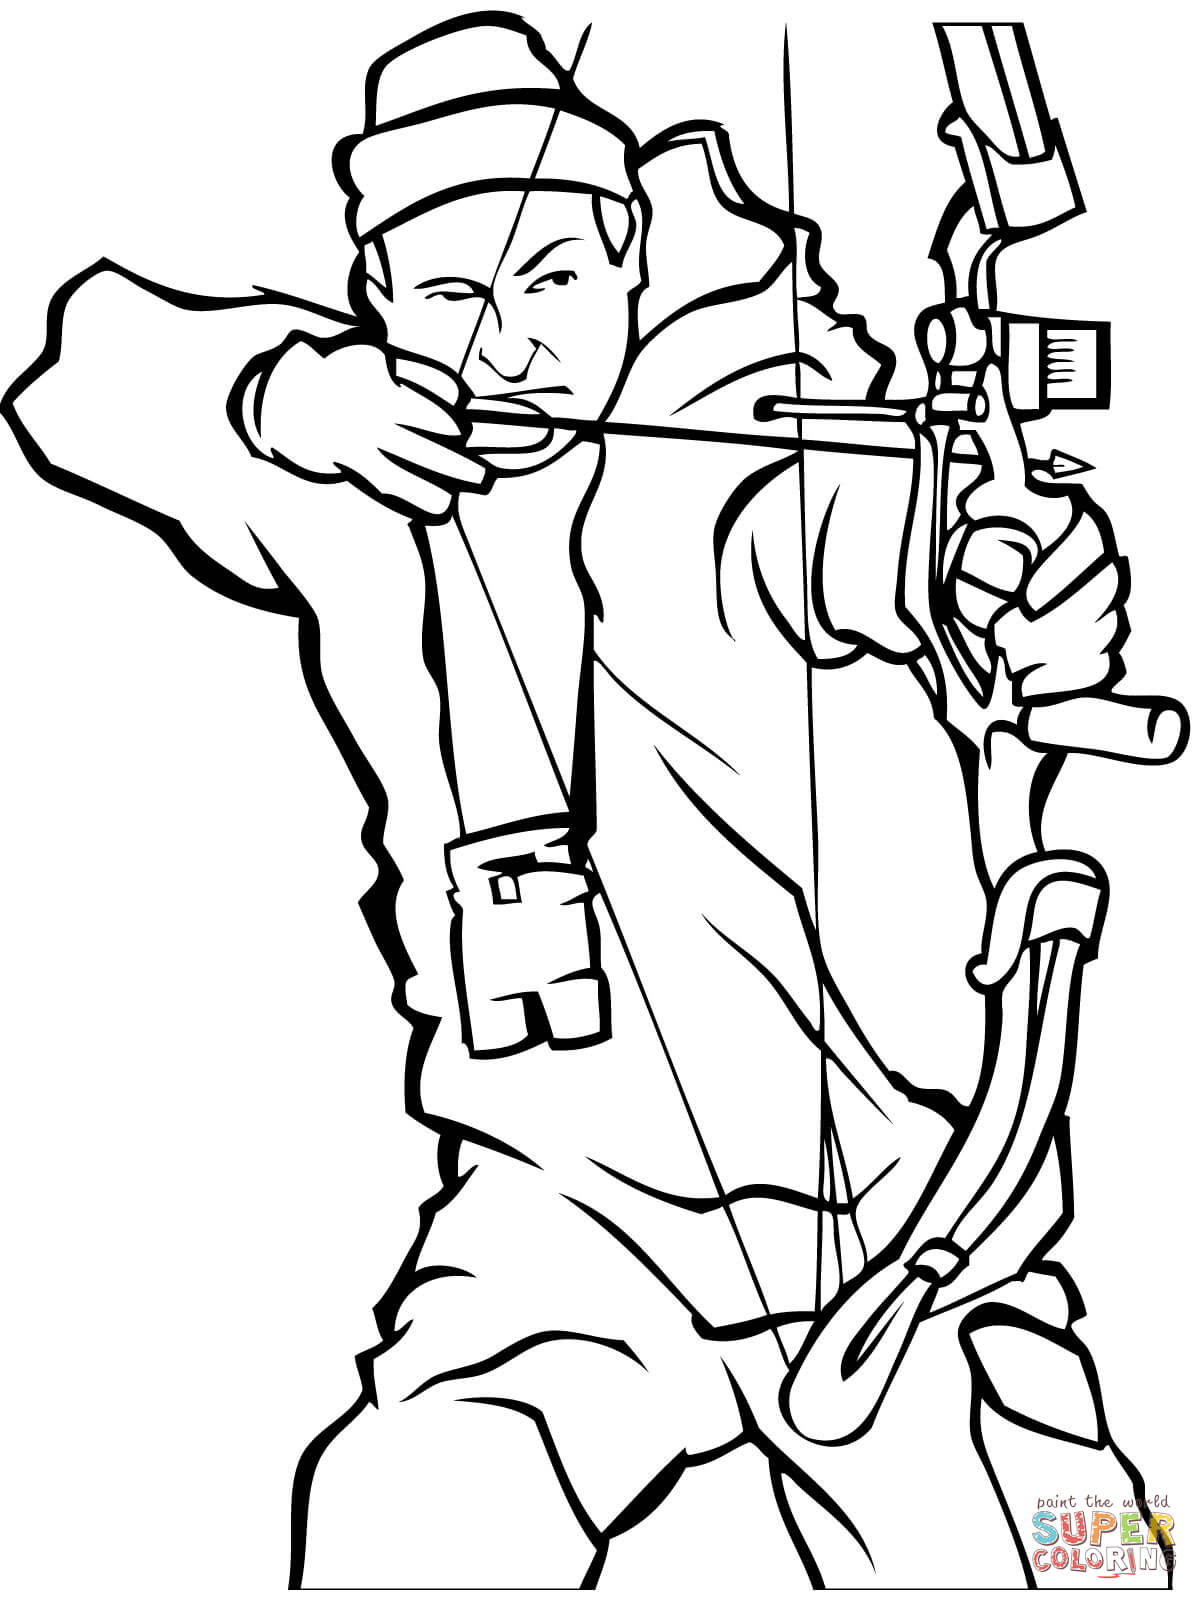 Bow Hunting Coloring Page